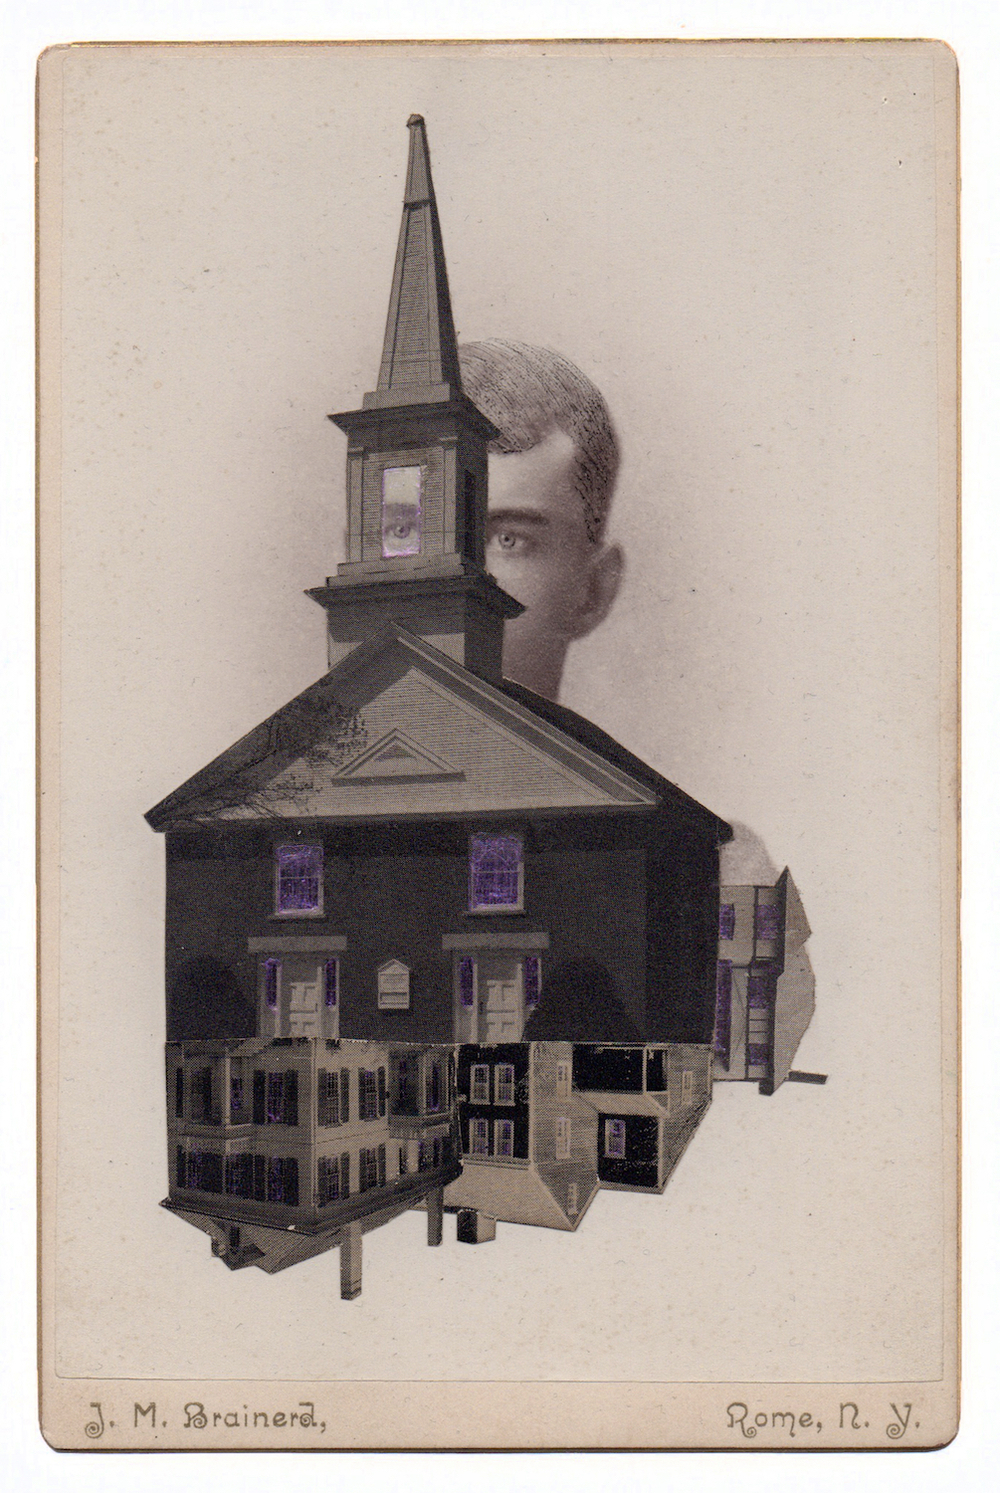 J.M. Brainerd, 2015, Found Photographs, Collage, & Acrylic, 6.25 x 4.25 inches